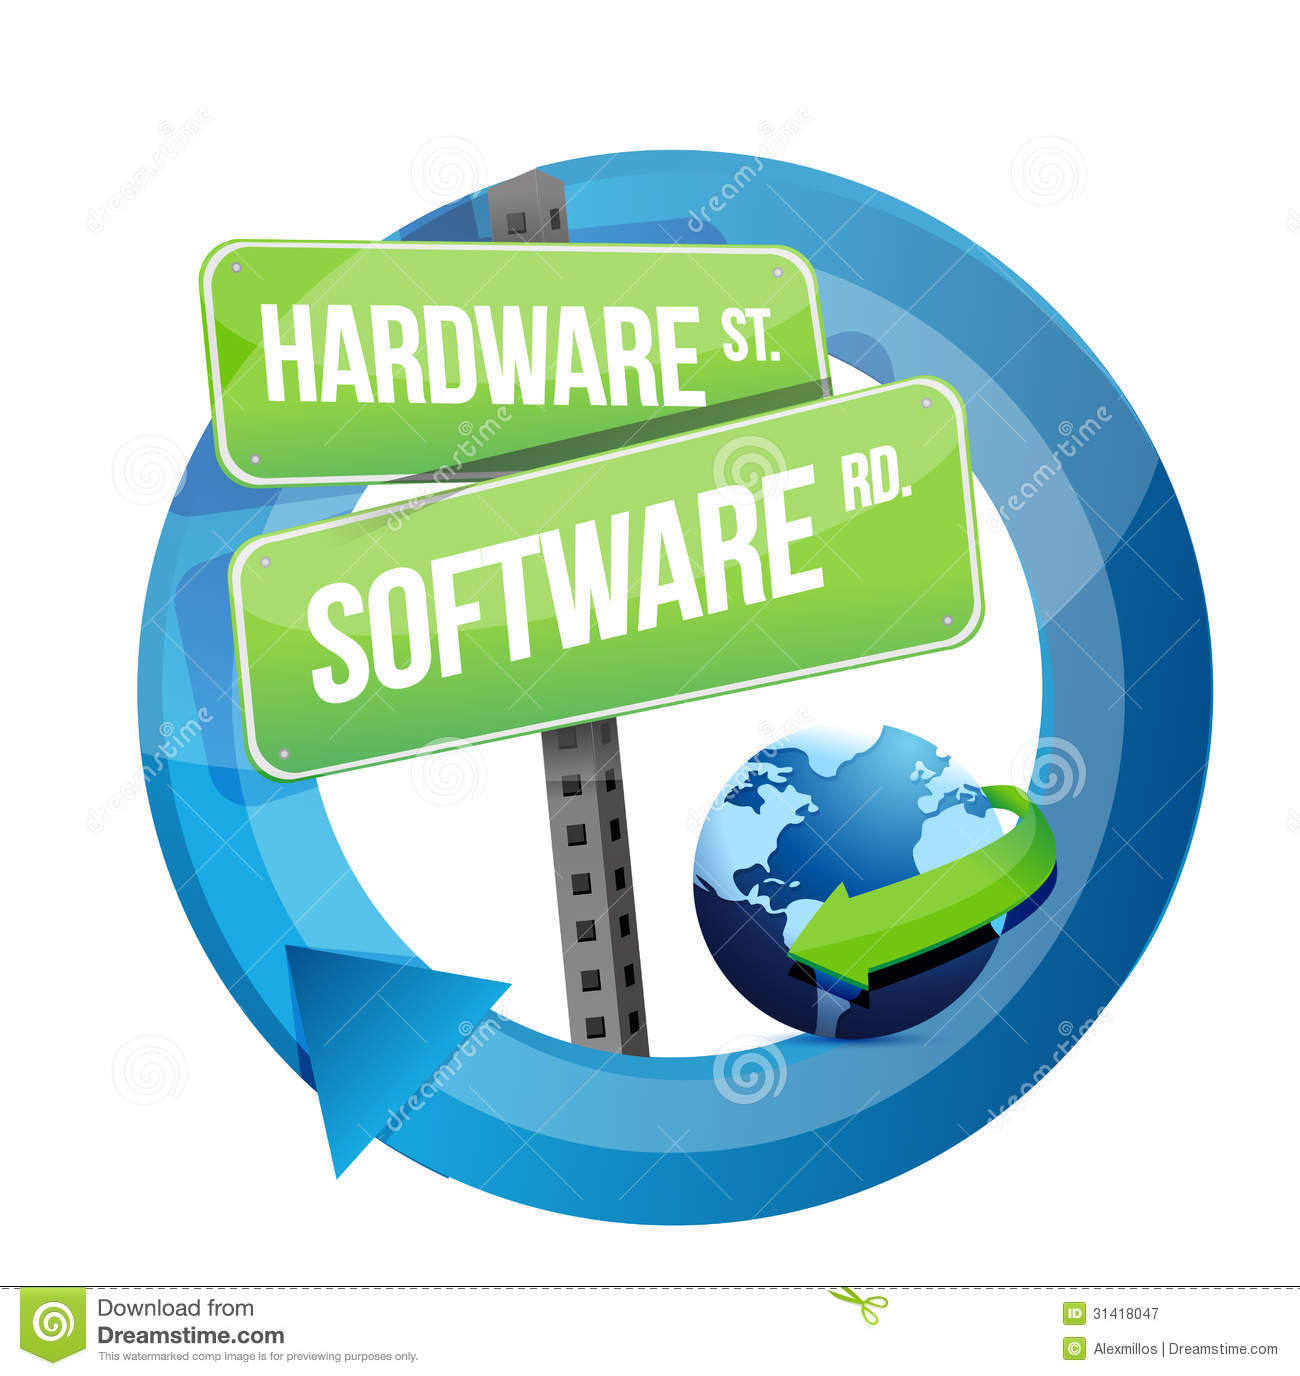 Hardware software road sign illustration design stock Computer art software